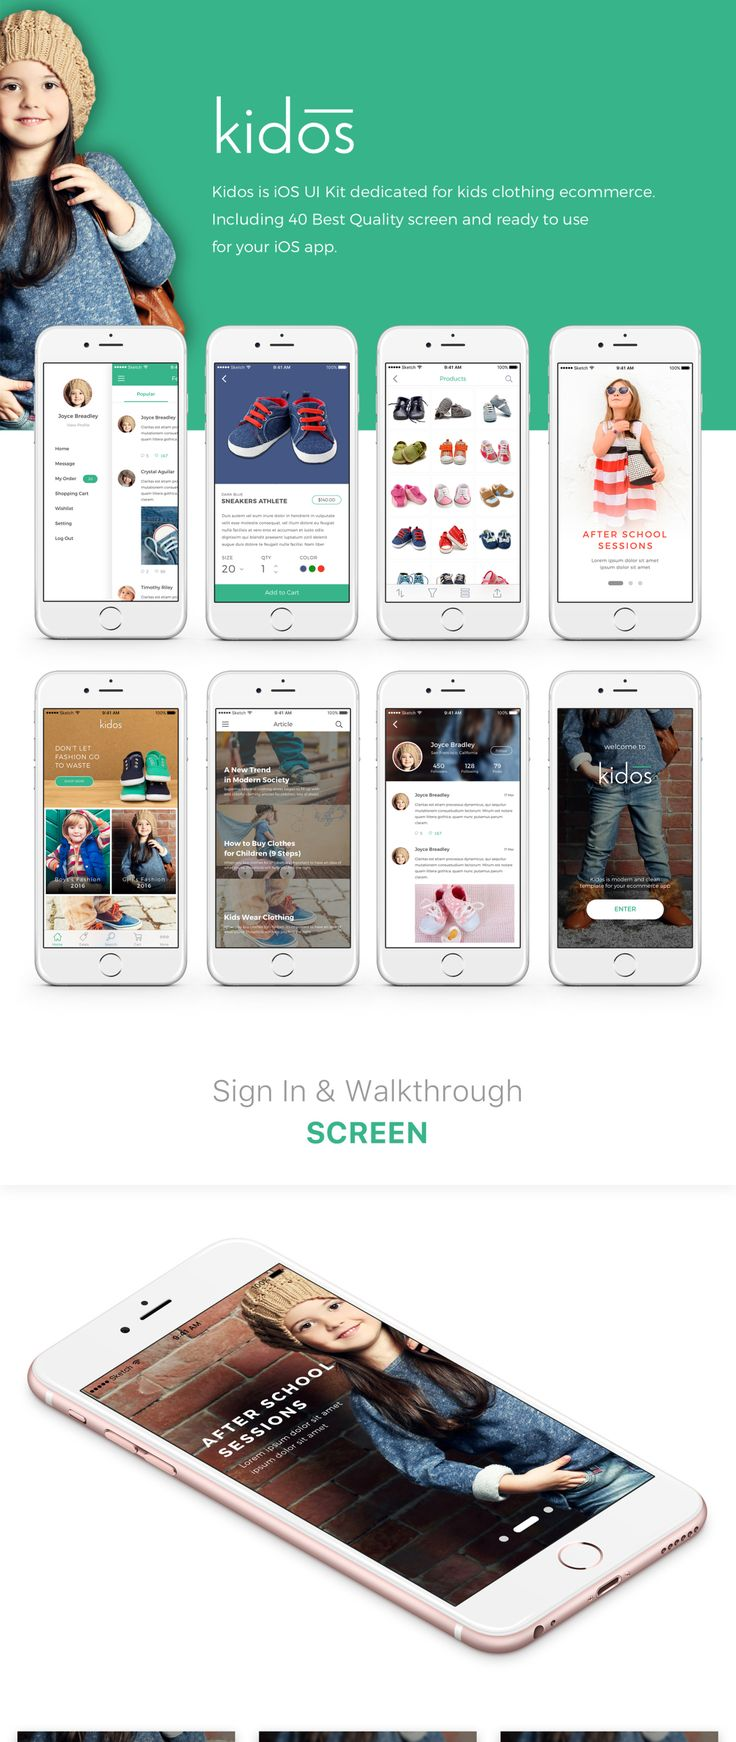 Kidos is the perfect iOS UI Kit dedicated for kid's clothing fashion ecommerce. Kidos iOS UI Kit includes 40 of the best quality iOS mobile screen templates for Photoshop & Sketch. This UI kit is ready to use for your iOS app!